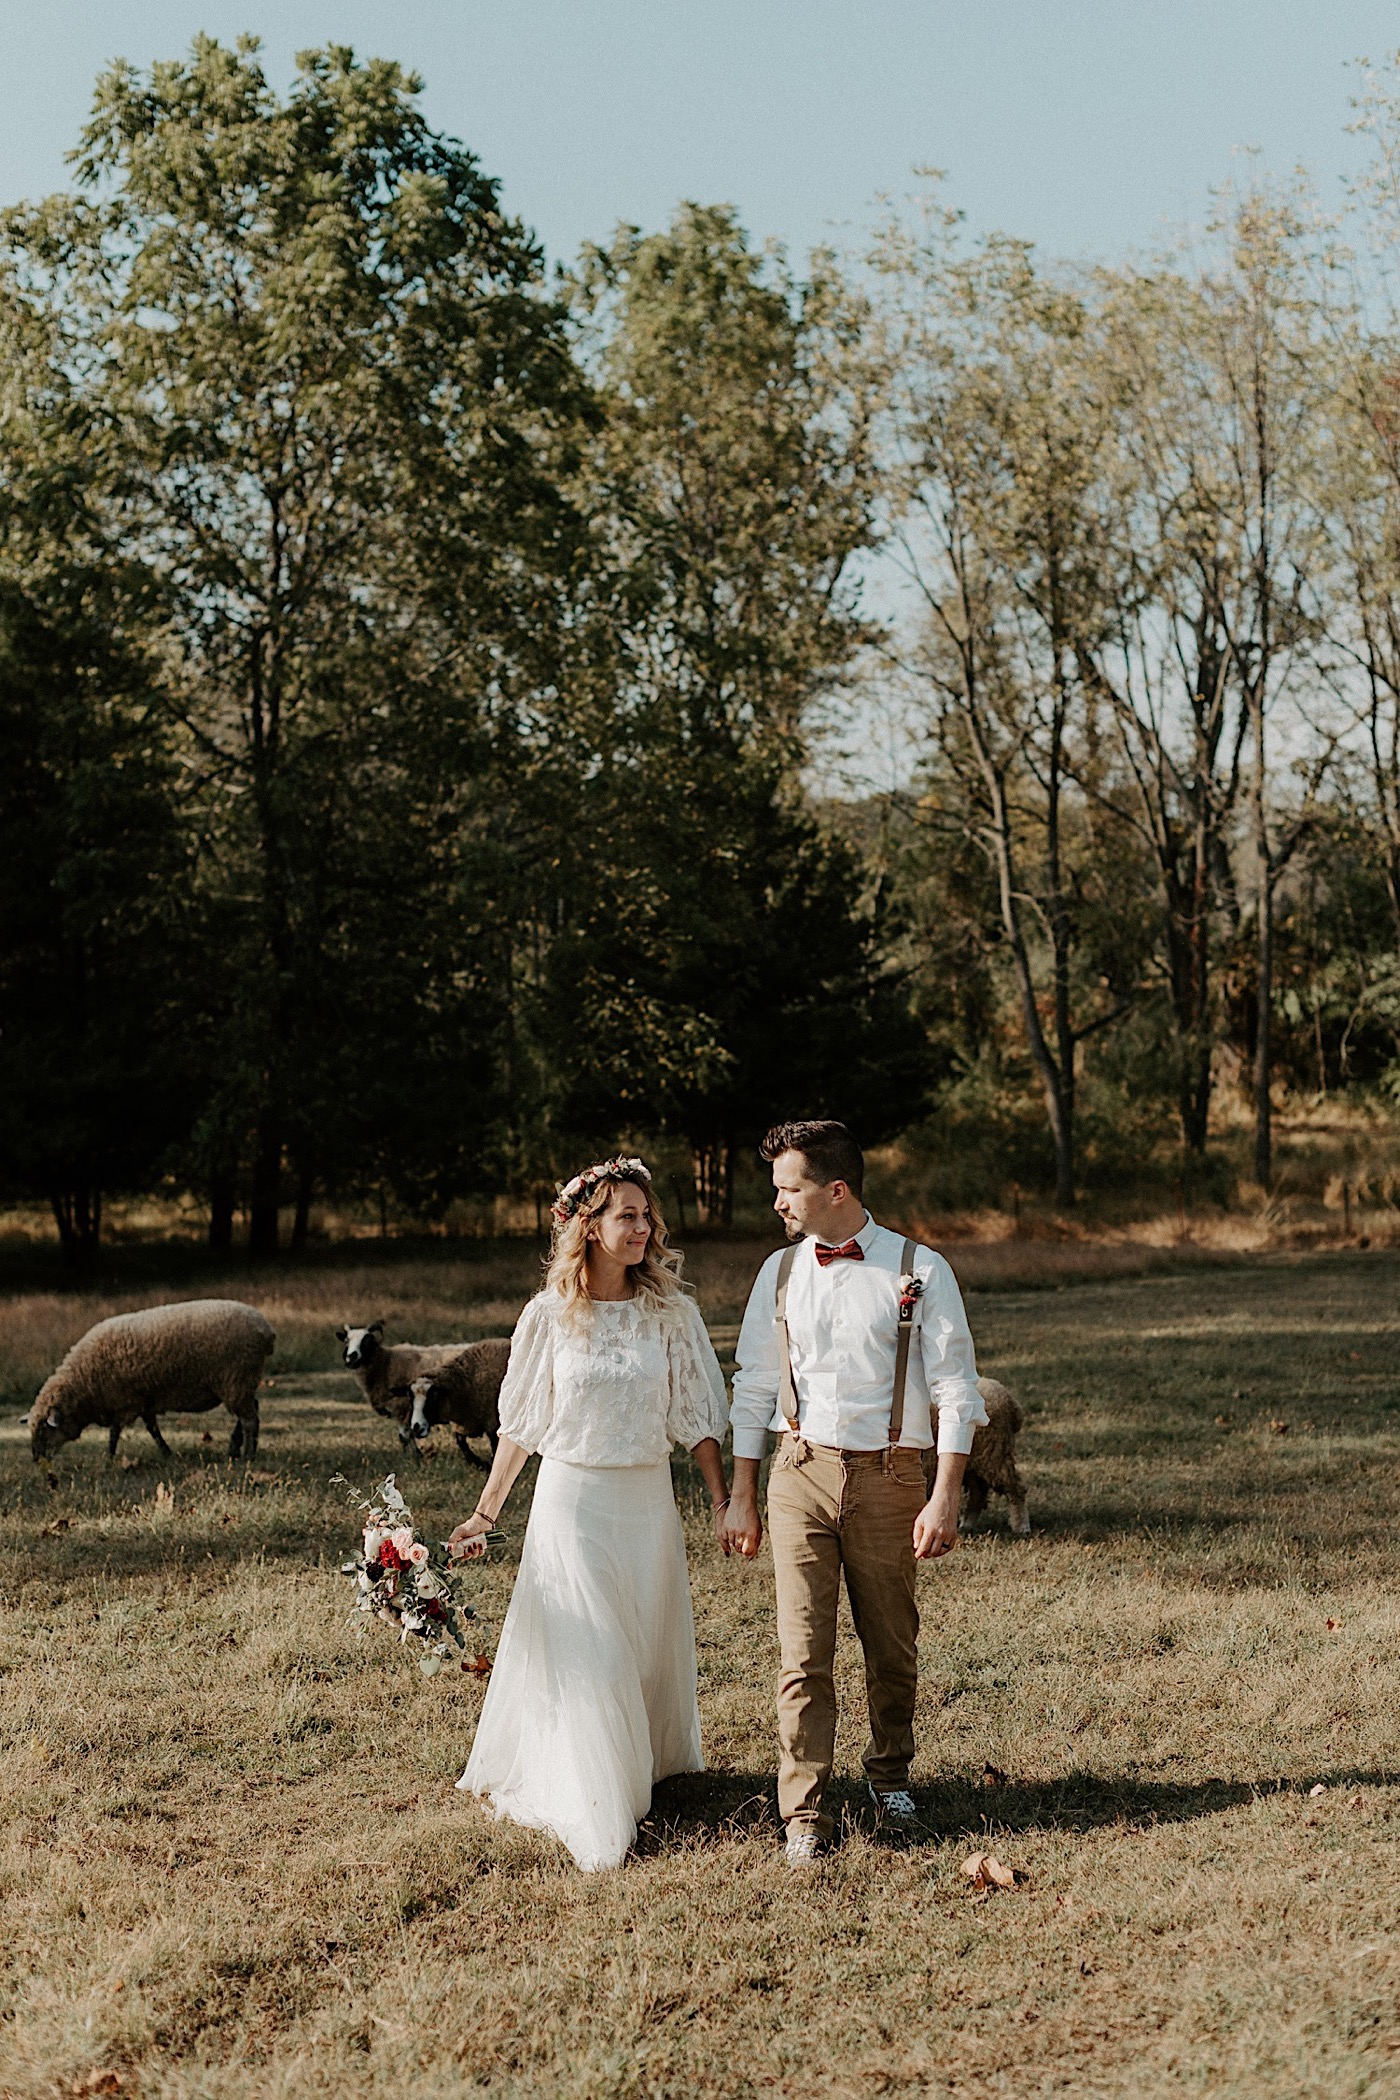 Woolverton Inn Elopement NJ Wedding Photographer Boho Wedding 019